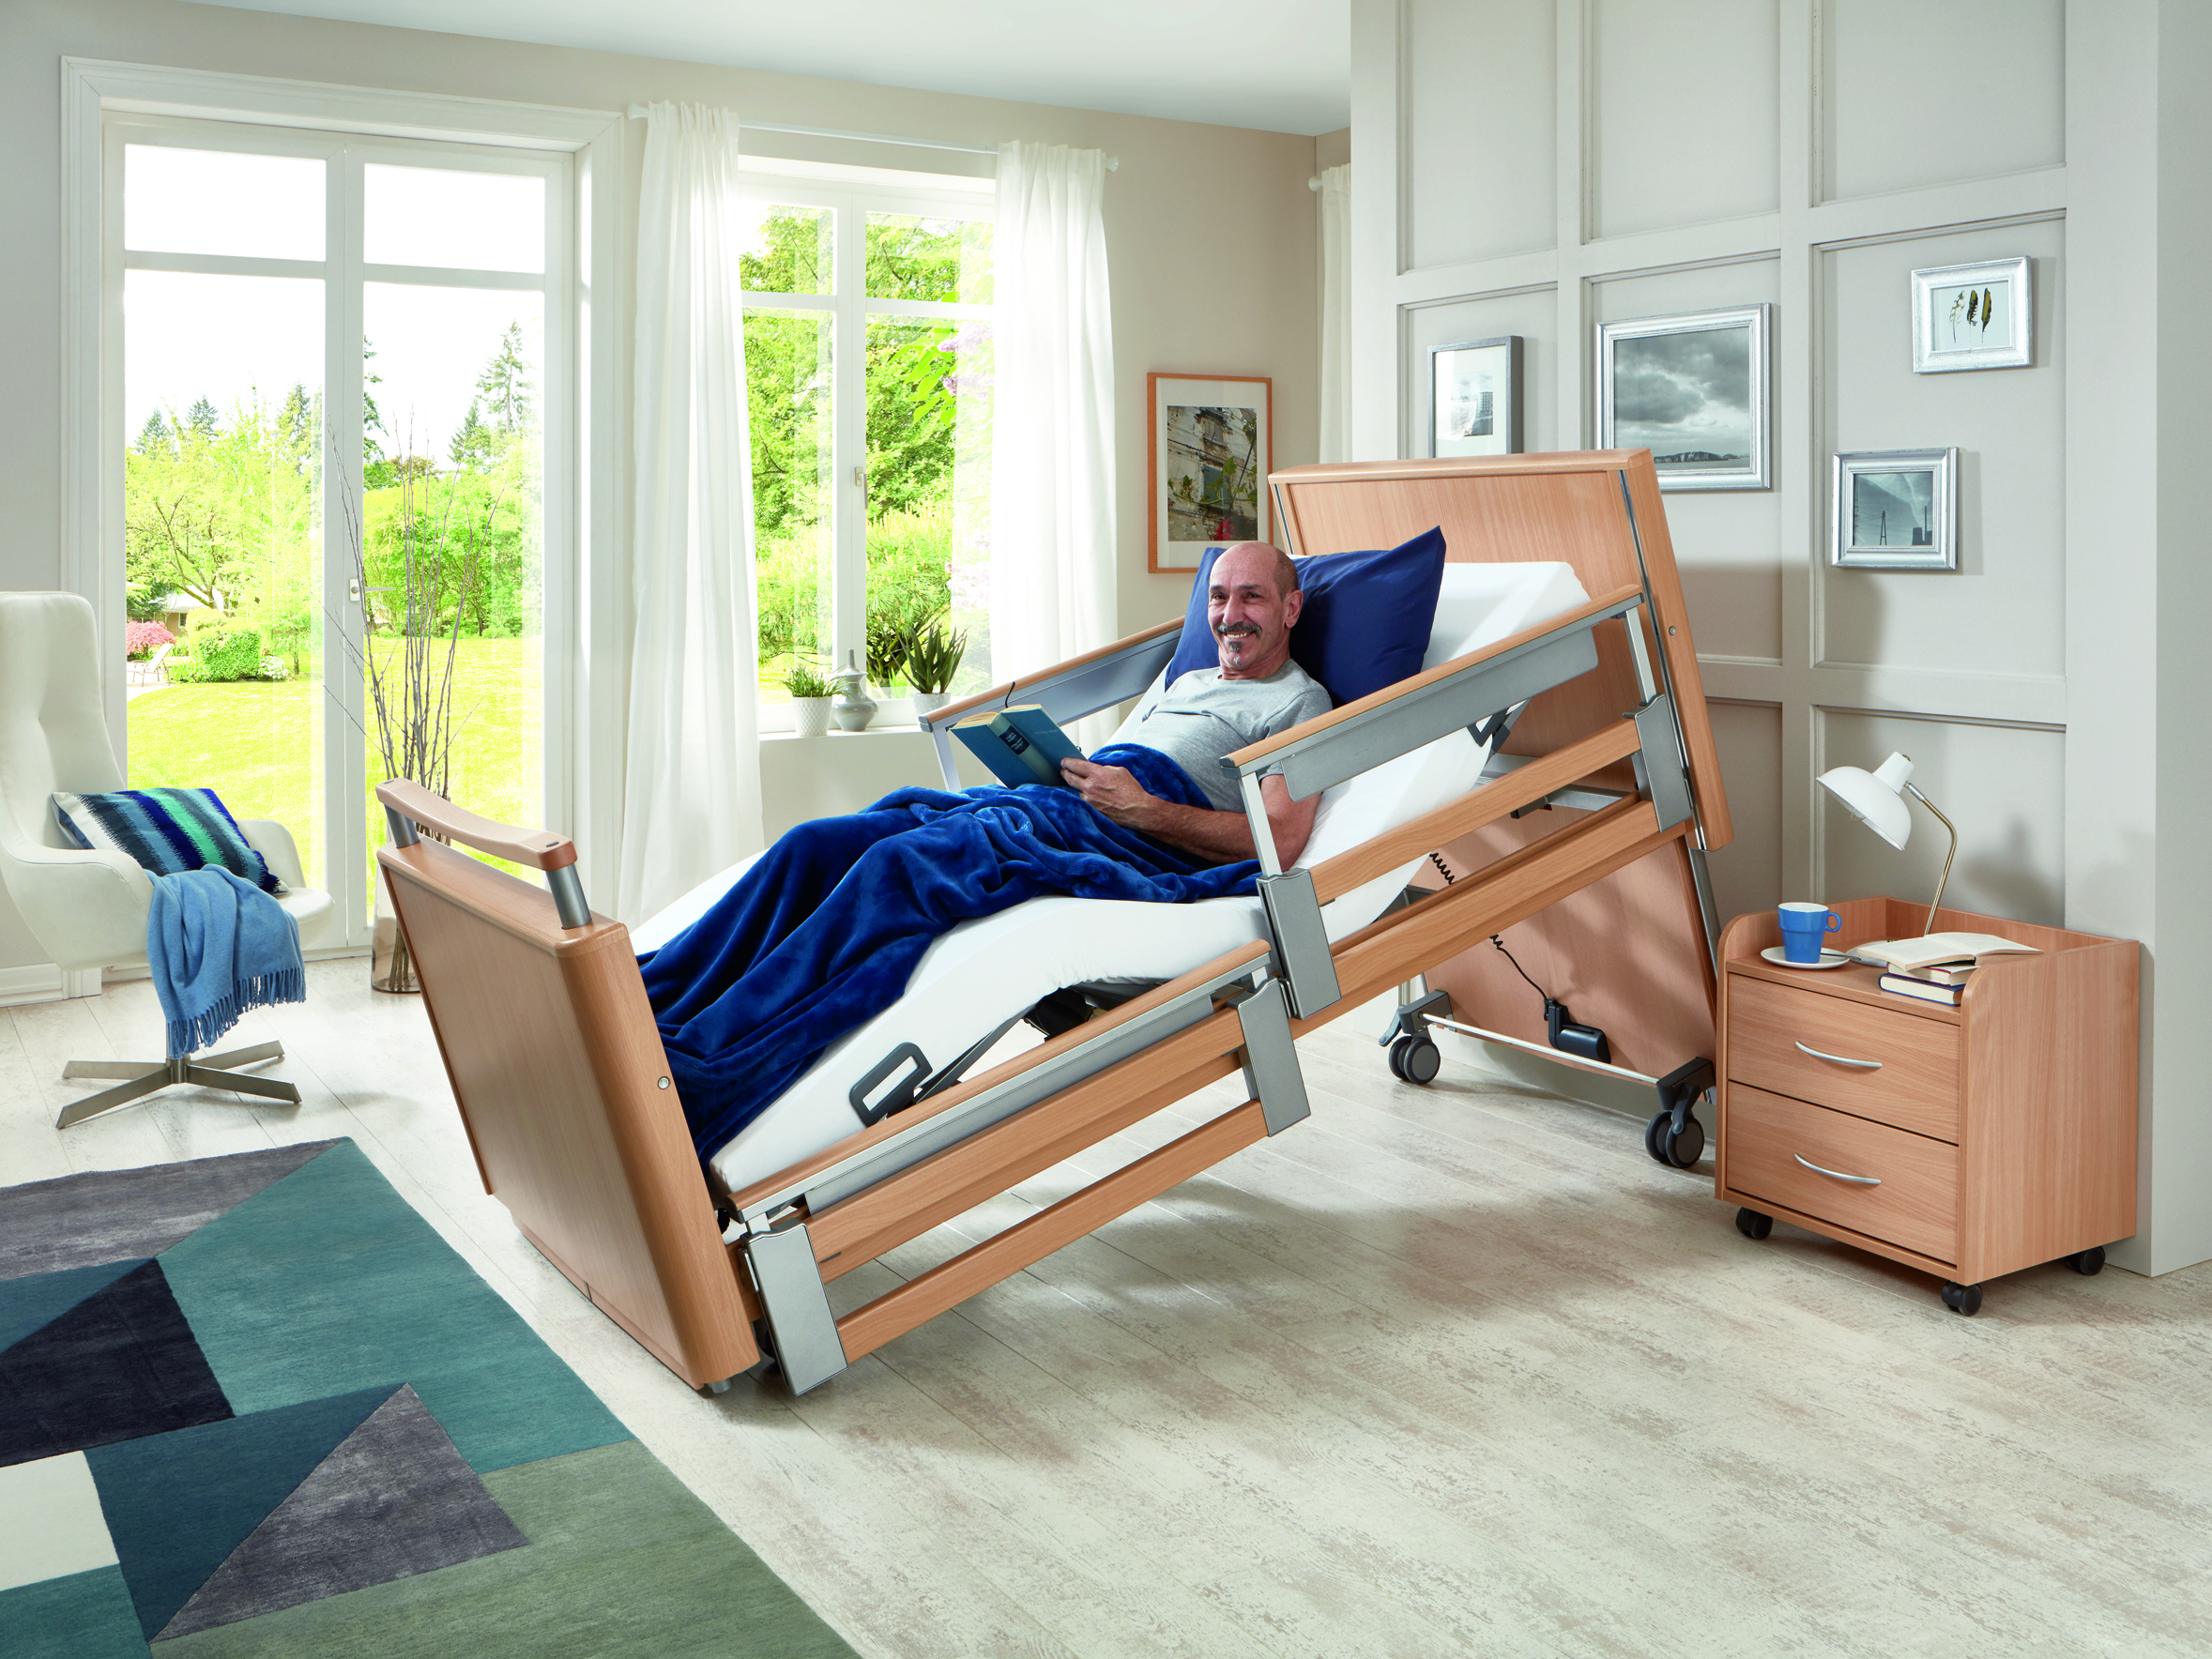 Sitting position of the Inovia care bed